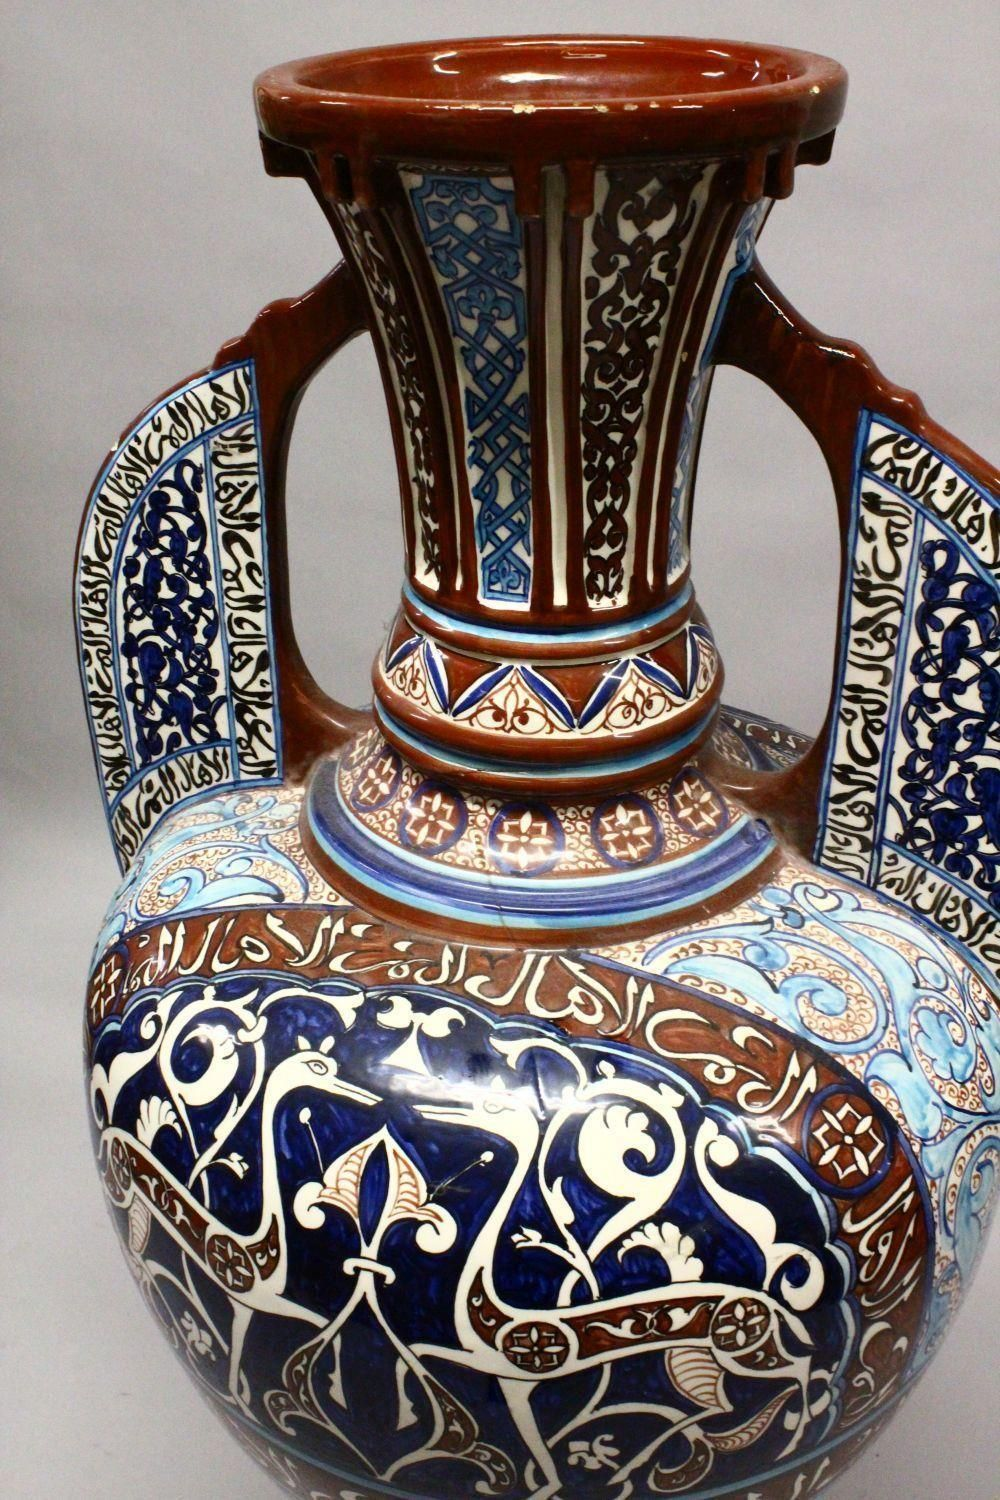 A HUGE 19TH CENTURY ISLAMIC HISPANO MORESQUE POTTERY ALHAMBRA STYLE POTTERY VASE & STAND, possibly - Image 2 of 10